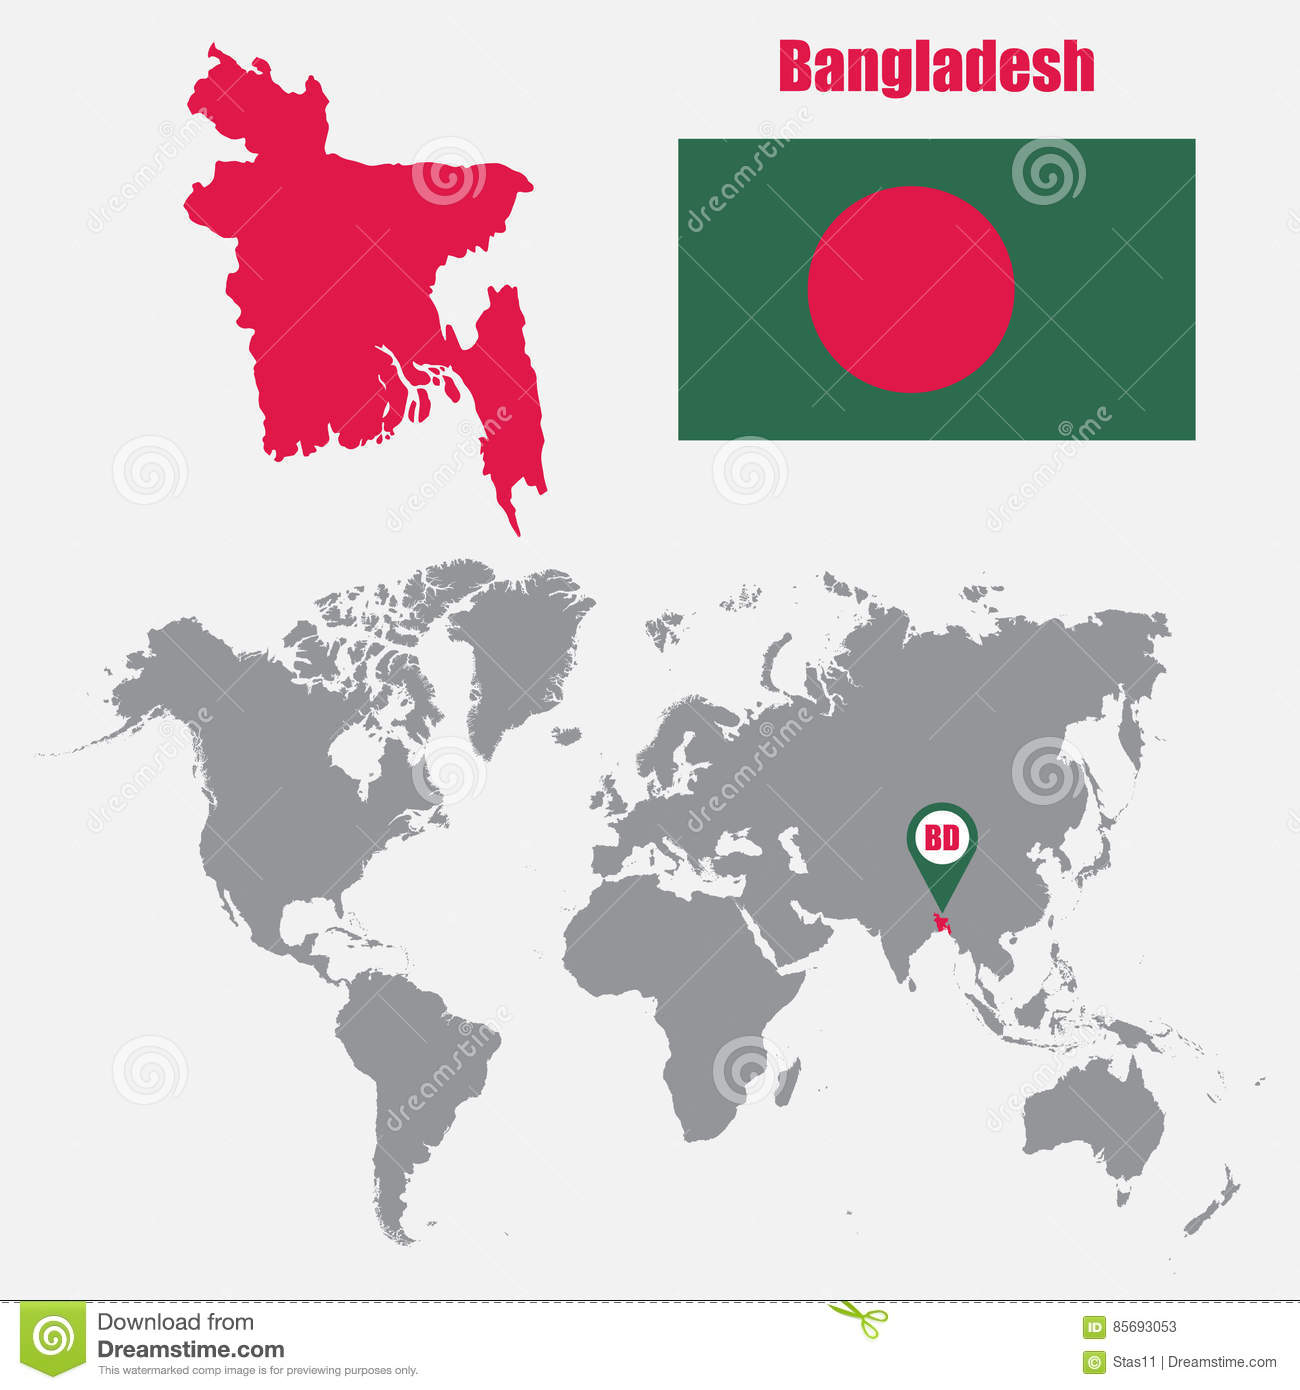 Bangladesh map on a world map with flag and map pointer vector download bangladesh map on a world map with flag and map pointer vector illustration stock gumiabroncs Gallery